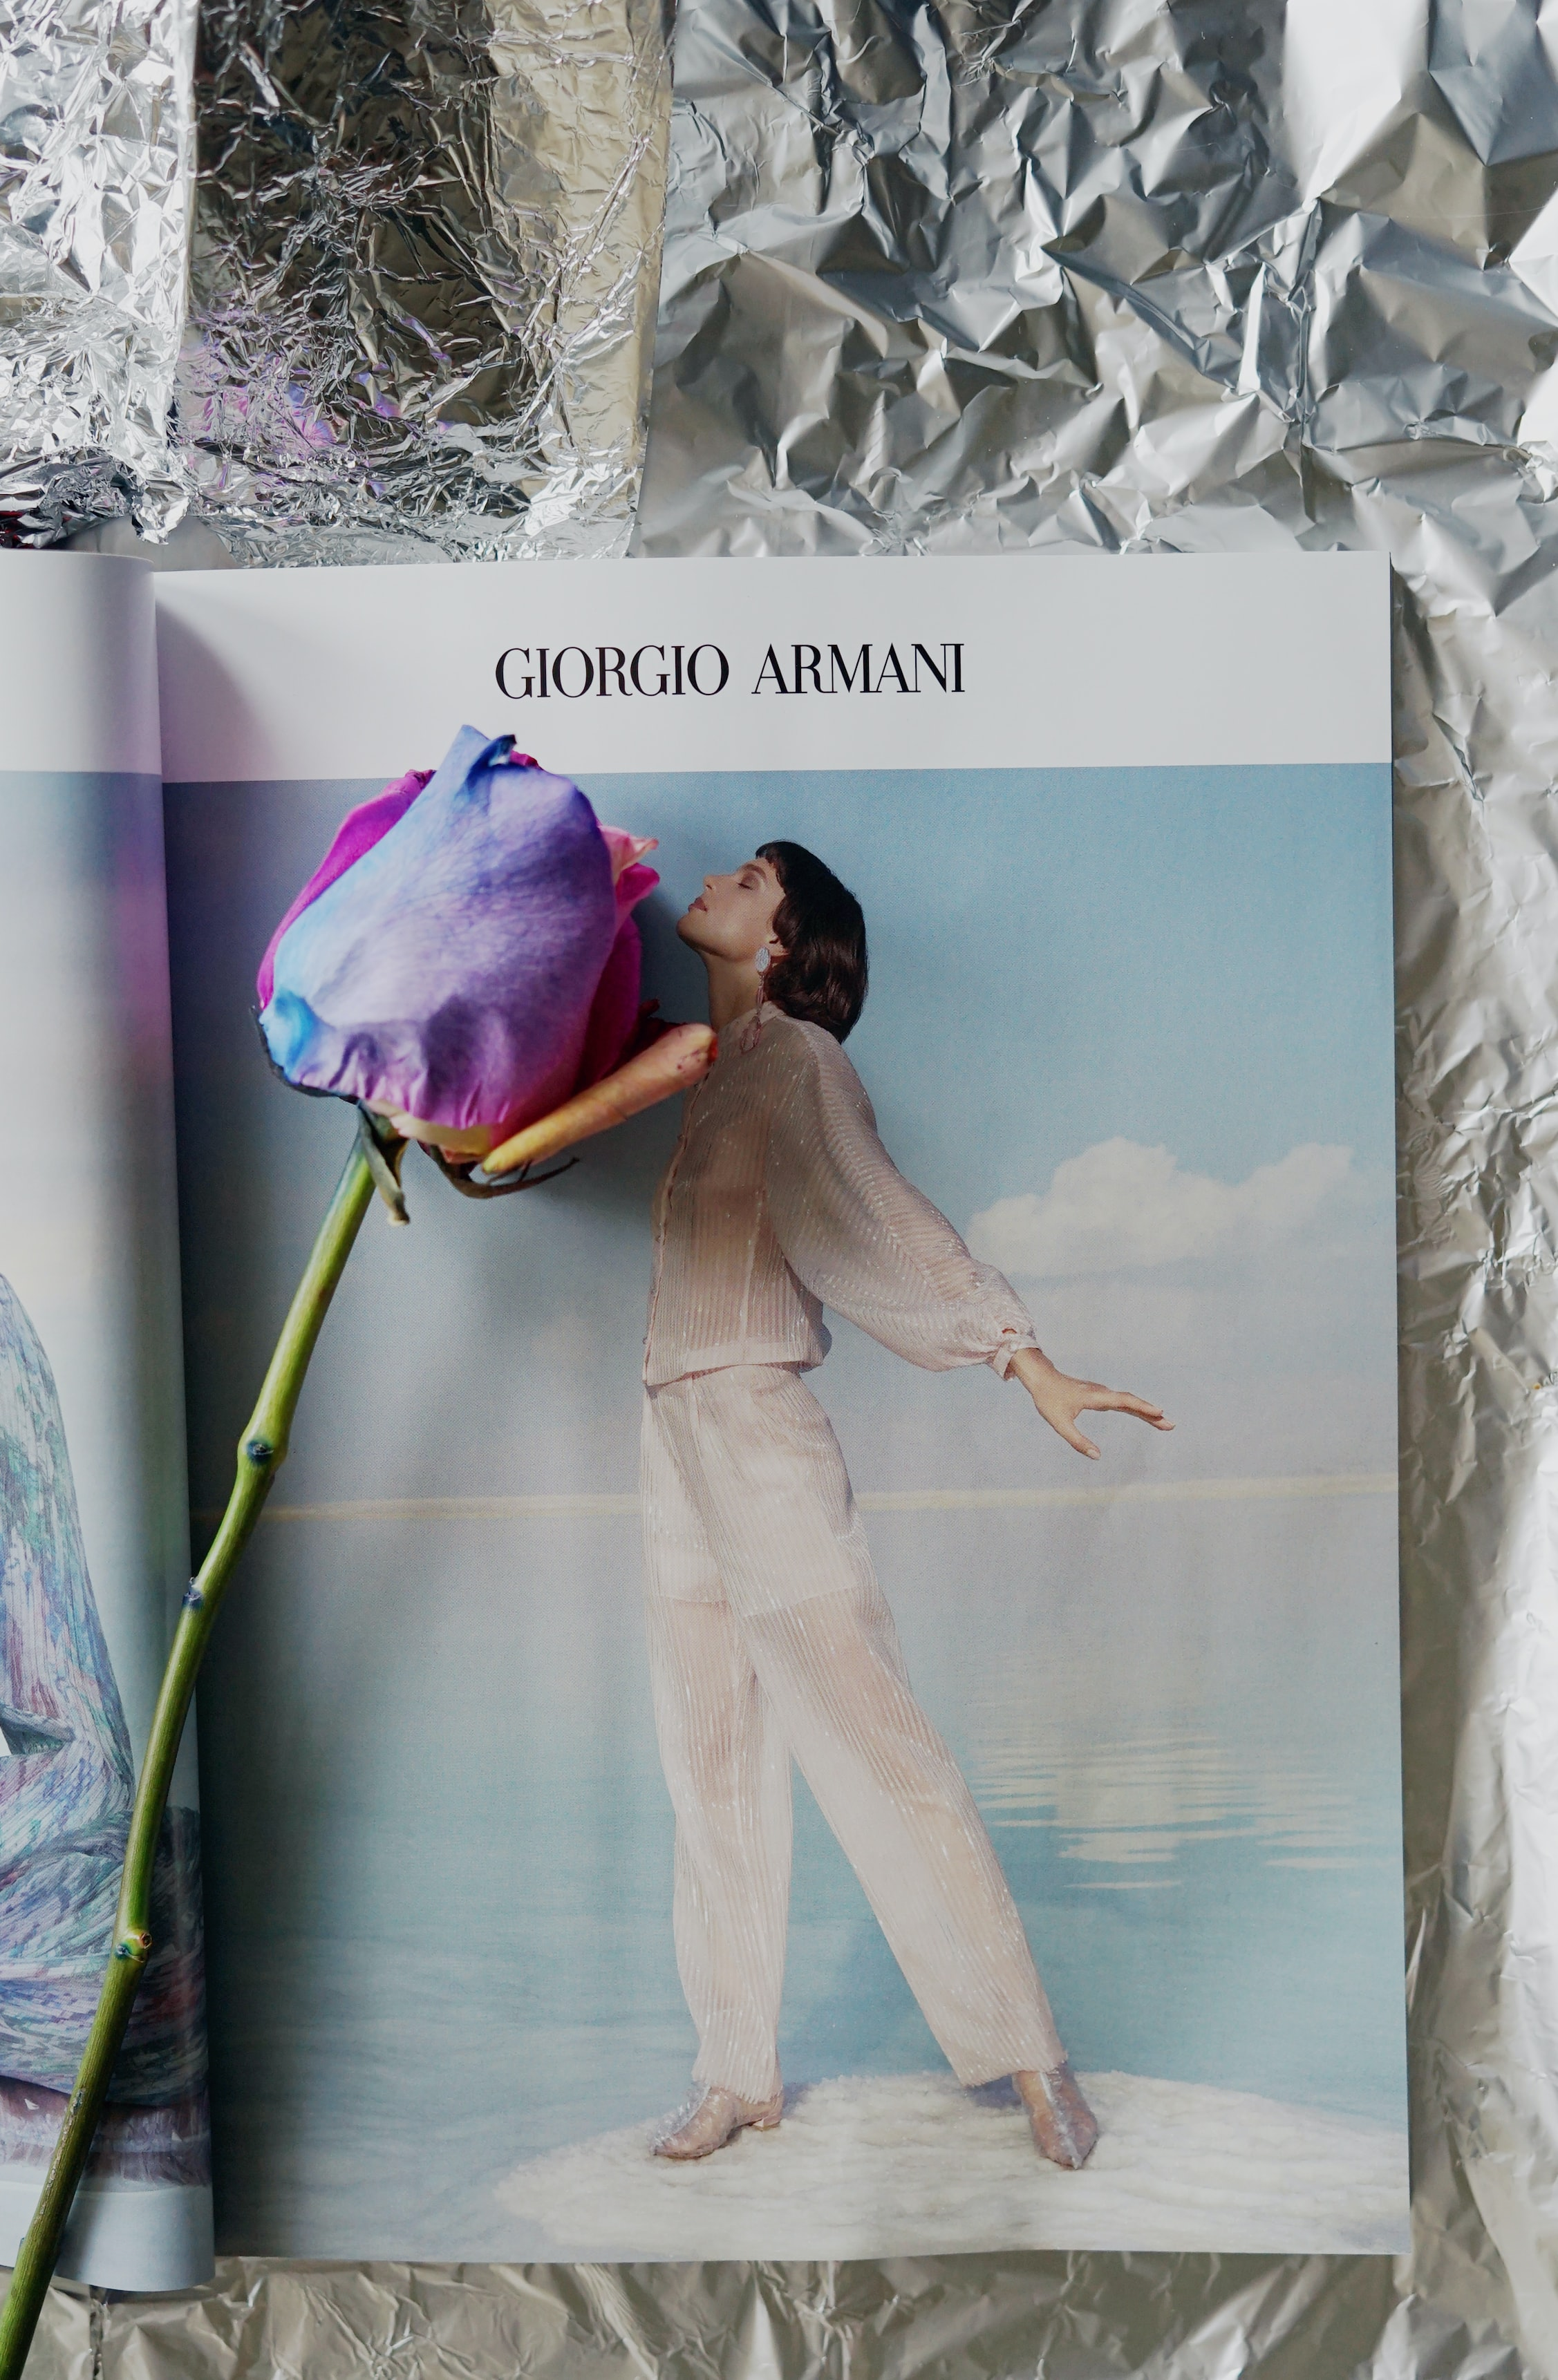 Giorgo Arman book with multi-colored rose